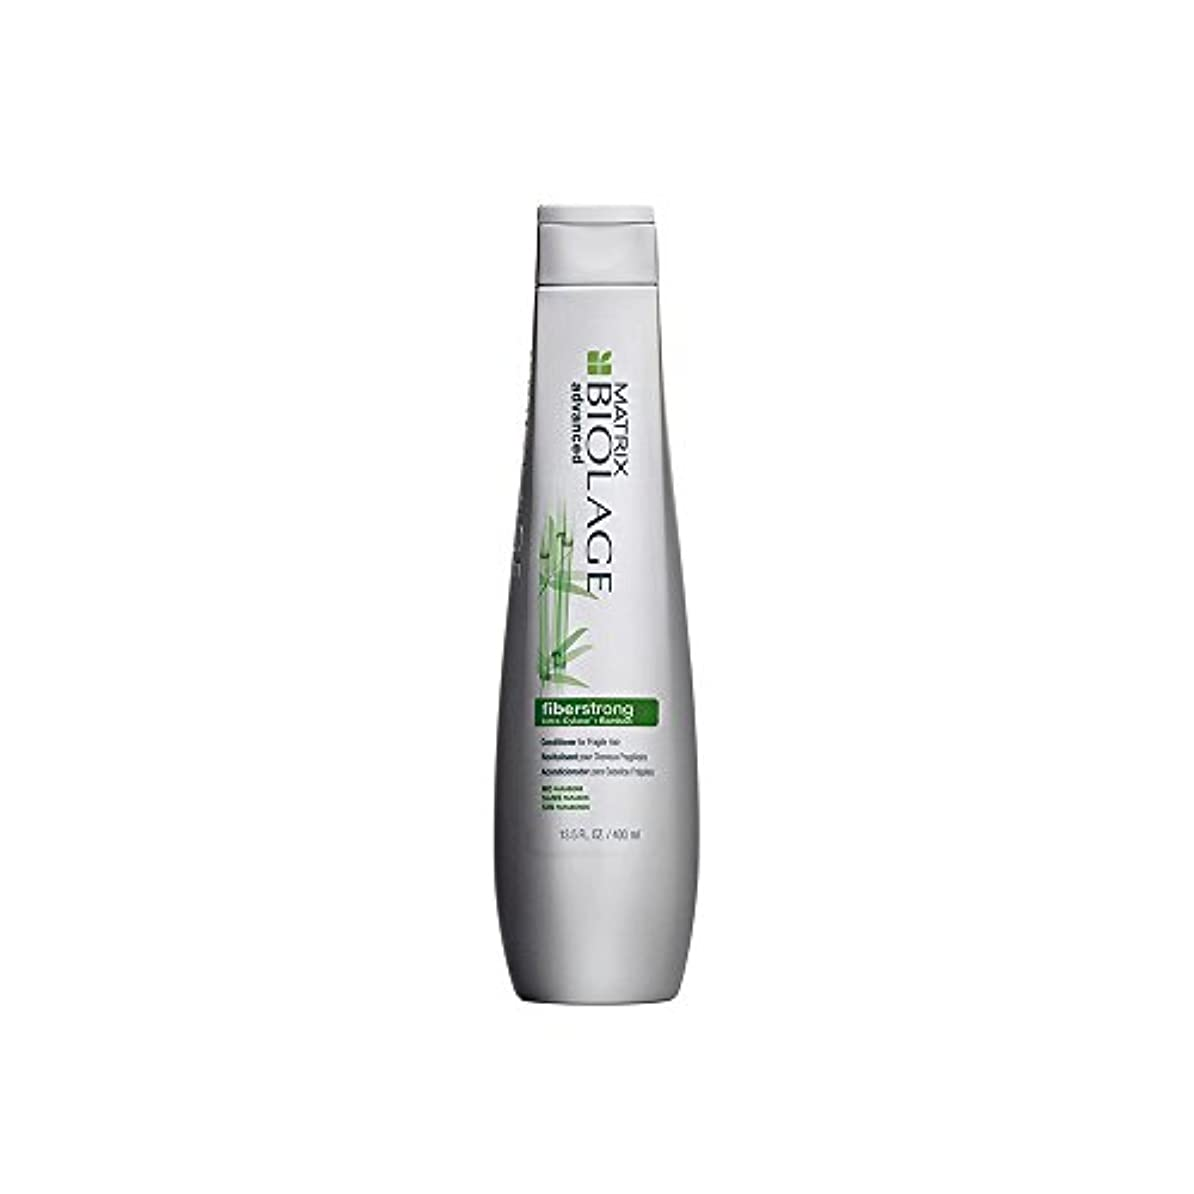 狂乱ブリード断線マトリックス Biolage Advanced FiberStrong Conditioner (For Fragile Hair) 1732272 400ml [海外直送品]